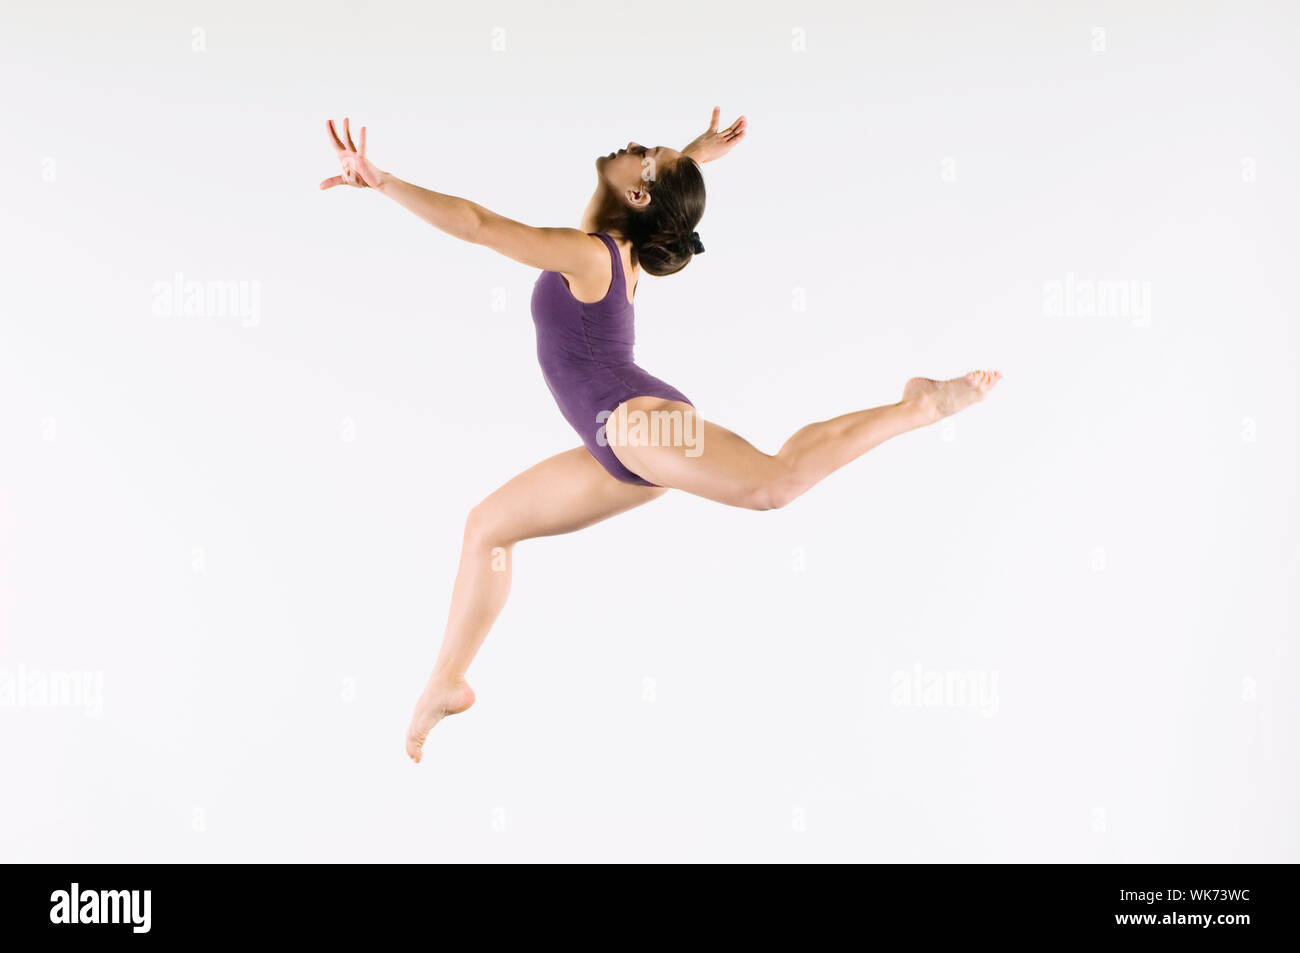 Young Gymnast Mid-air during Jump Stock Photo